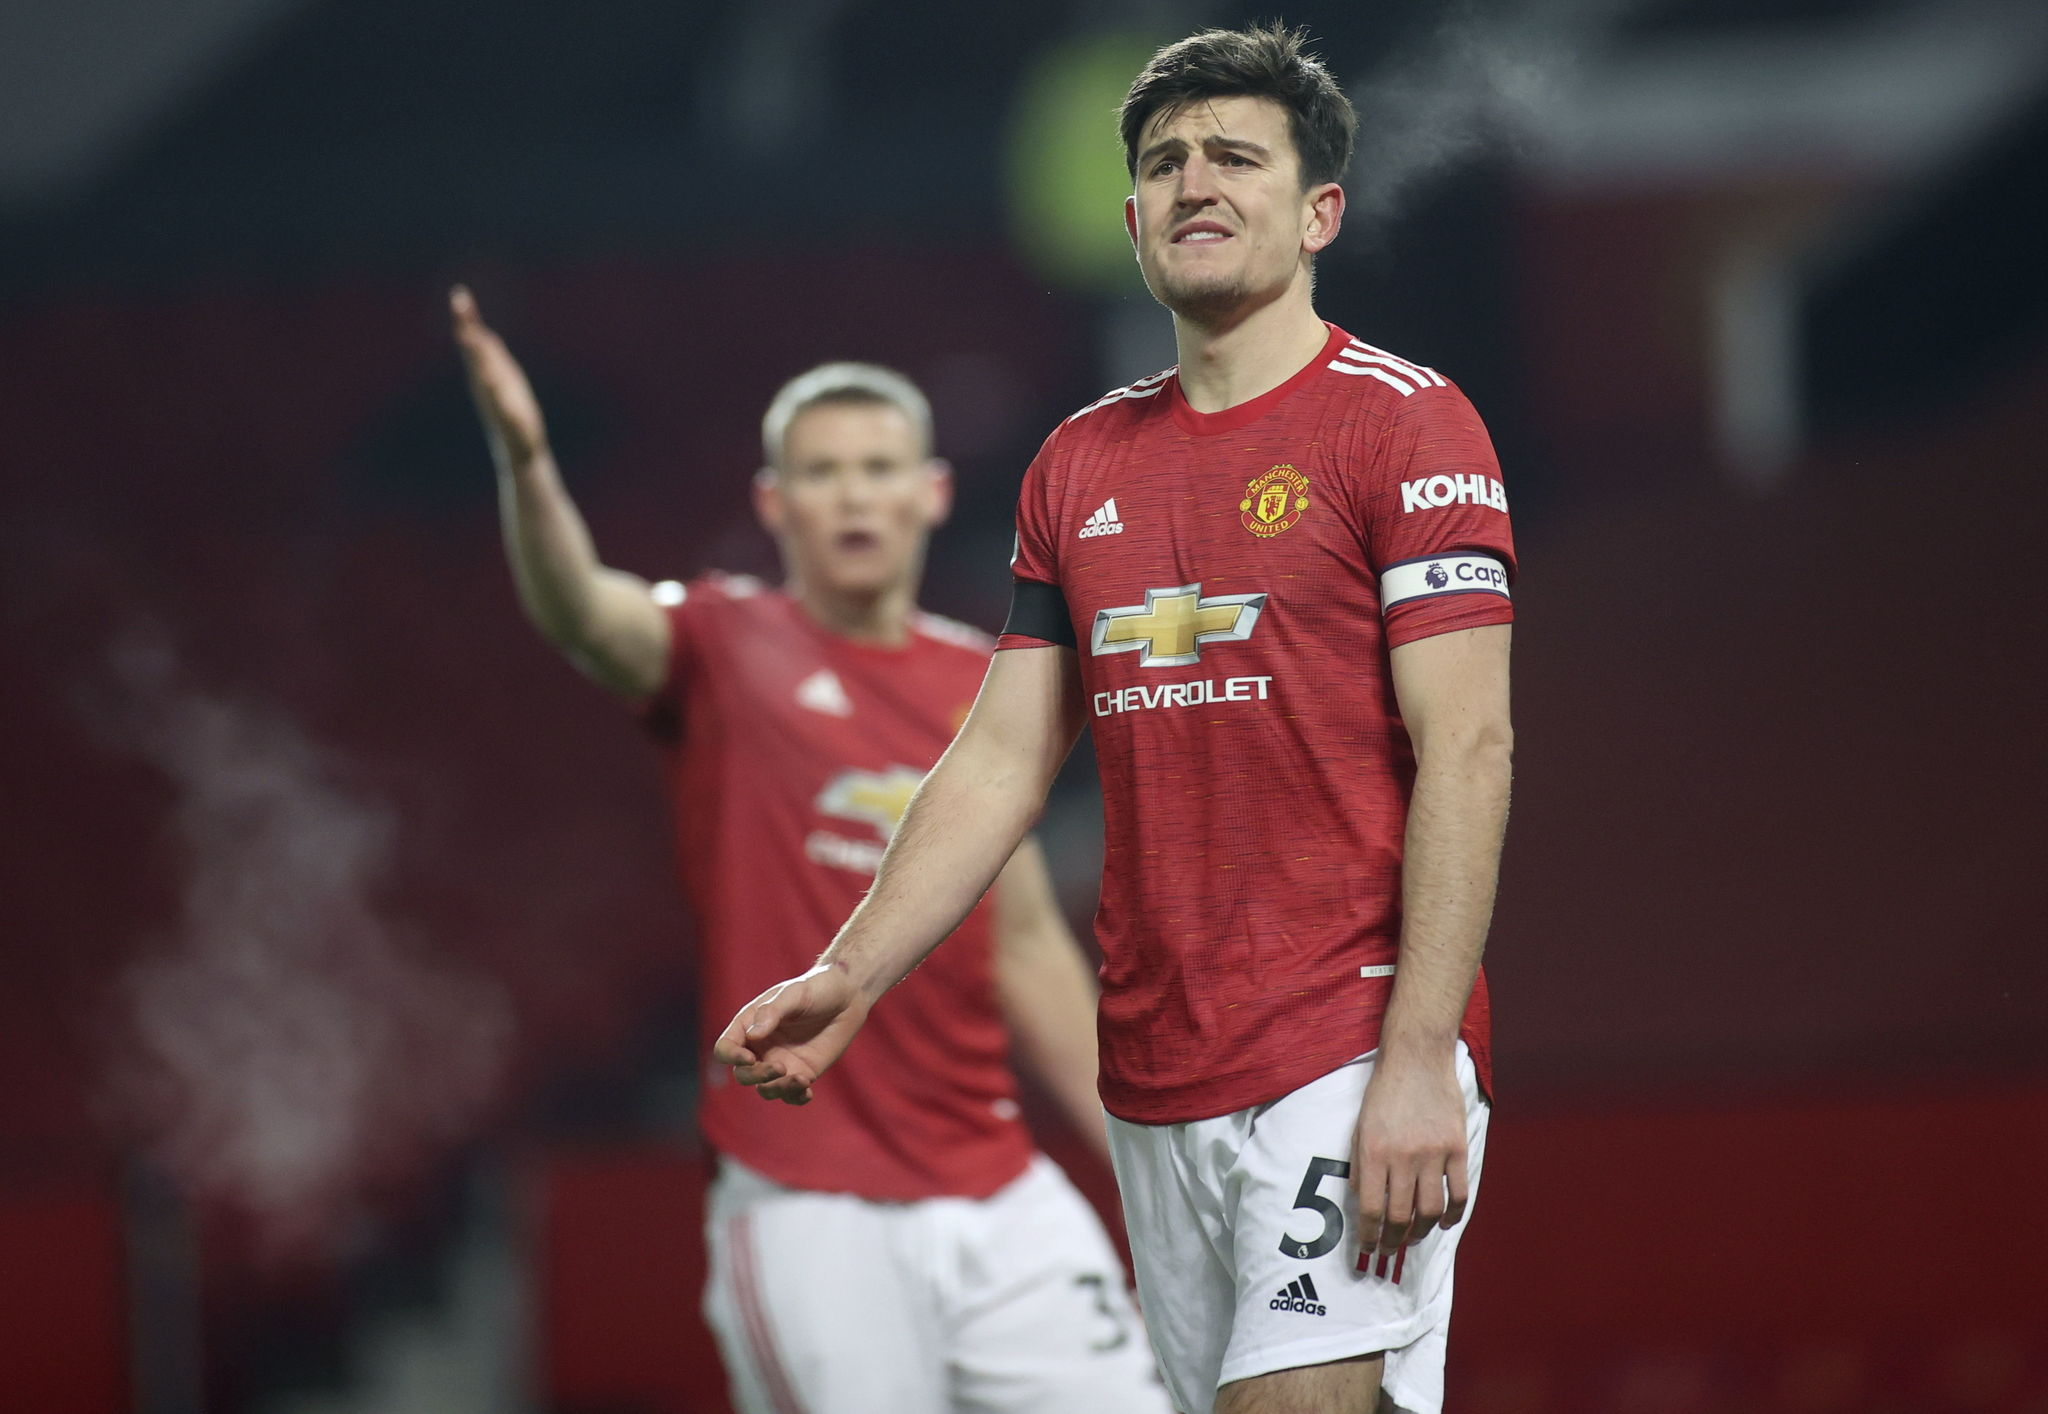 lt;HIT gt;Manchester lt;/HIT gt; ( lt;HIT gt;United lt;/HIT gt; Kingdom), 01/01/2021.- Harry Maguire (R) of lt;HIT gt;Manchester lt;/HIT gt; lt;HIT gt;United lt;/HIT gt; reacts during the English Premier League soccer match between lt;HIT gt;Manchester lt;/HIT gt; lt;HIT gt;United lt;/HIT gt; and Aston Villa in lt;HIT gt;Manchester lt;/HIT gt;, Britain, 01 January 2021. (Reino Unido) EFE/EPA/Carl Recine / POOL EDITORIAL USE ONLY. No use with unauthorized audio, video, data, fixture lists, club/league logos or 'live' services. Online in-match use limited to 120 images, no video emulation. No use in betting, games or single club/league/player publications